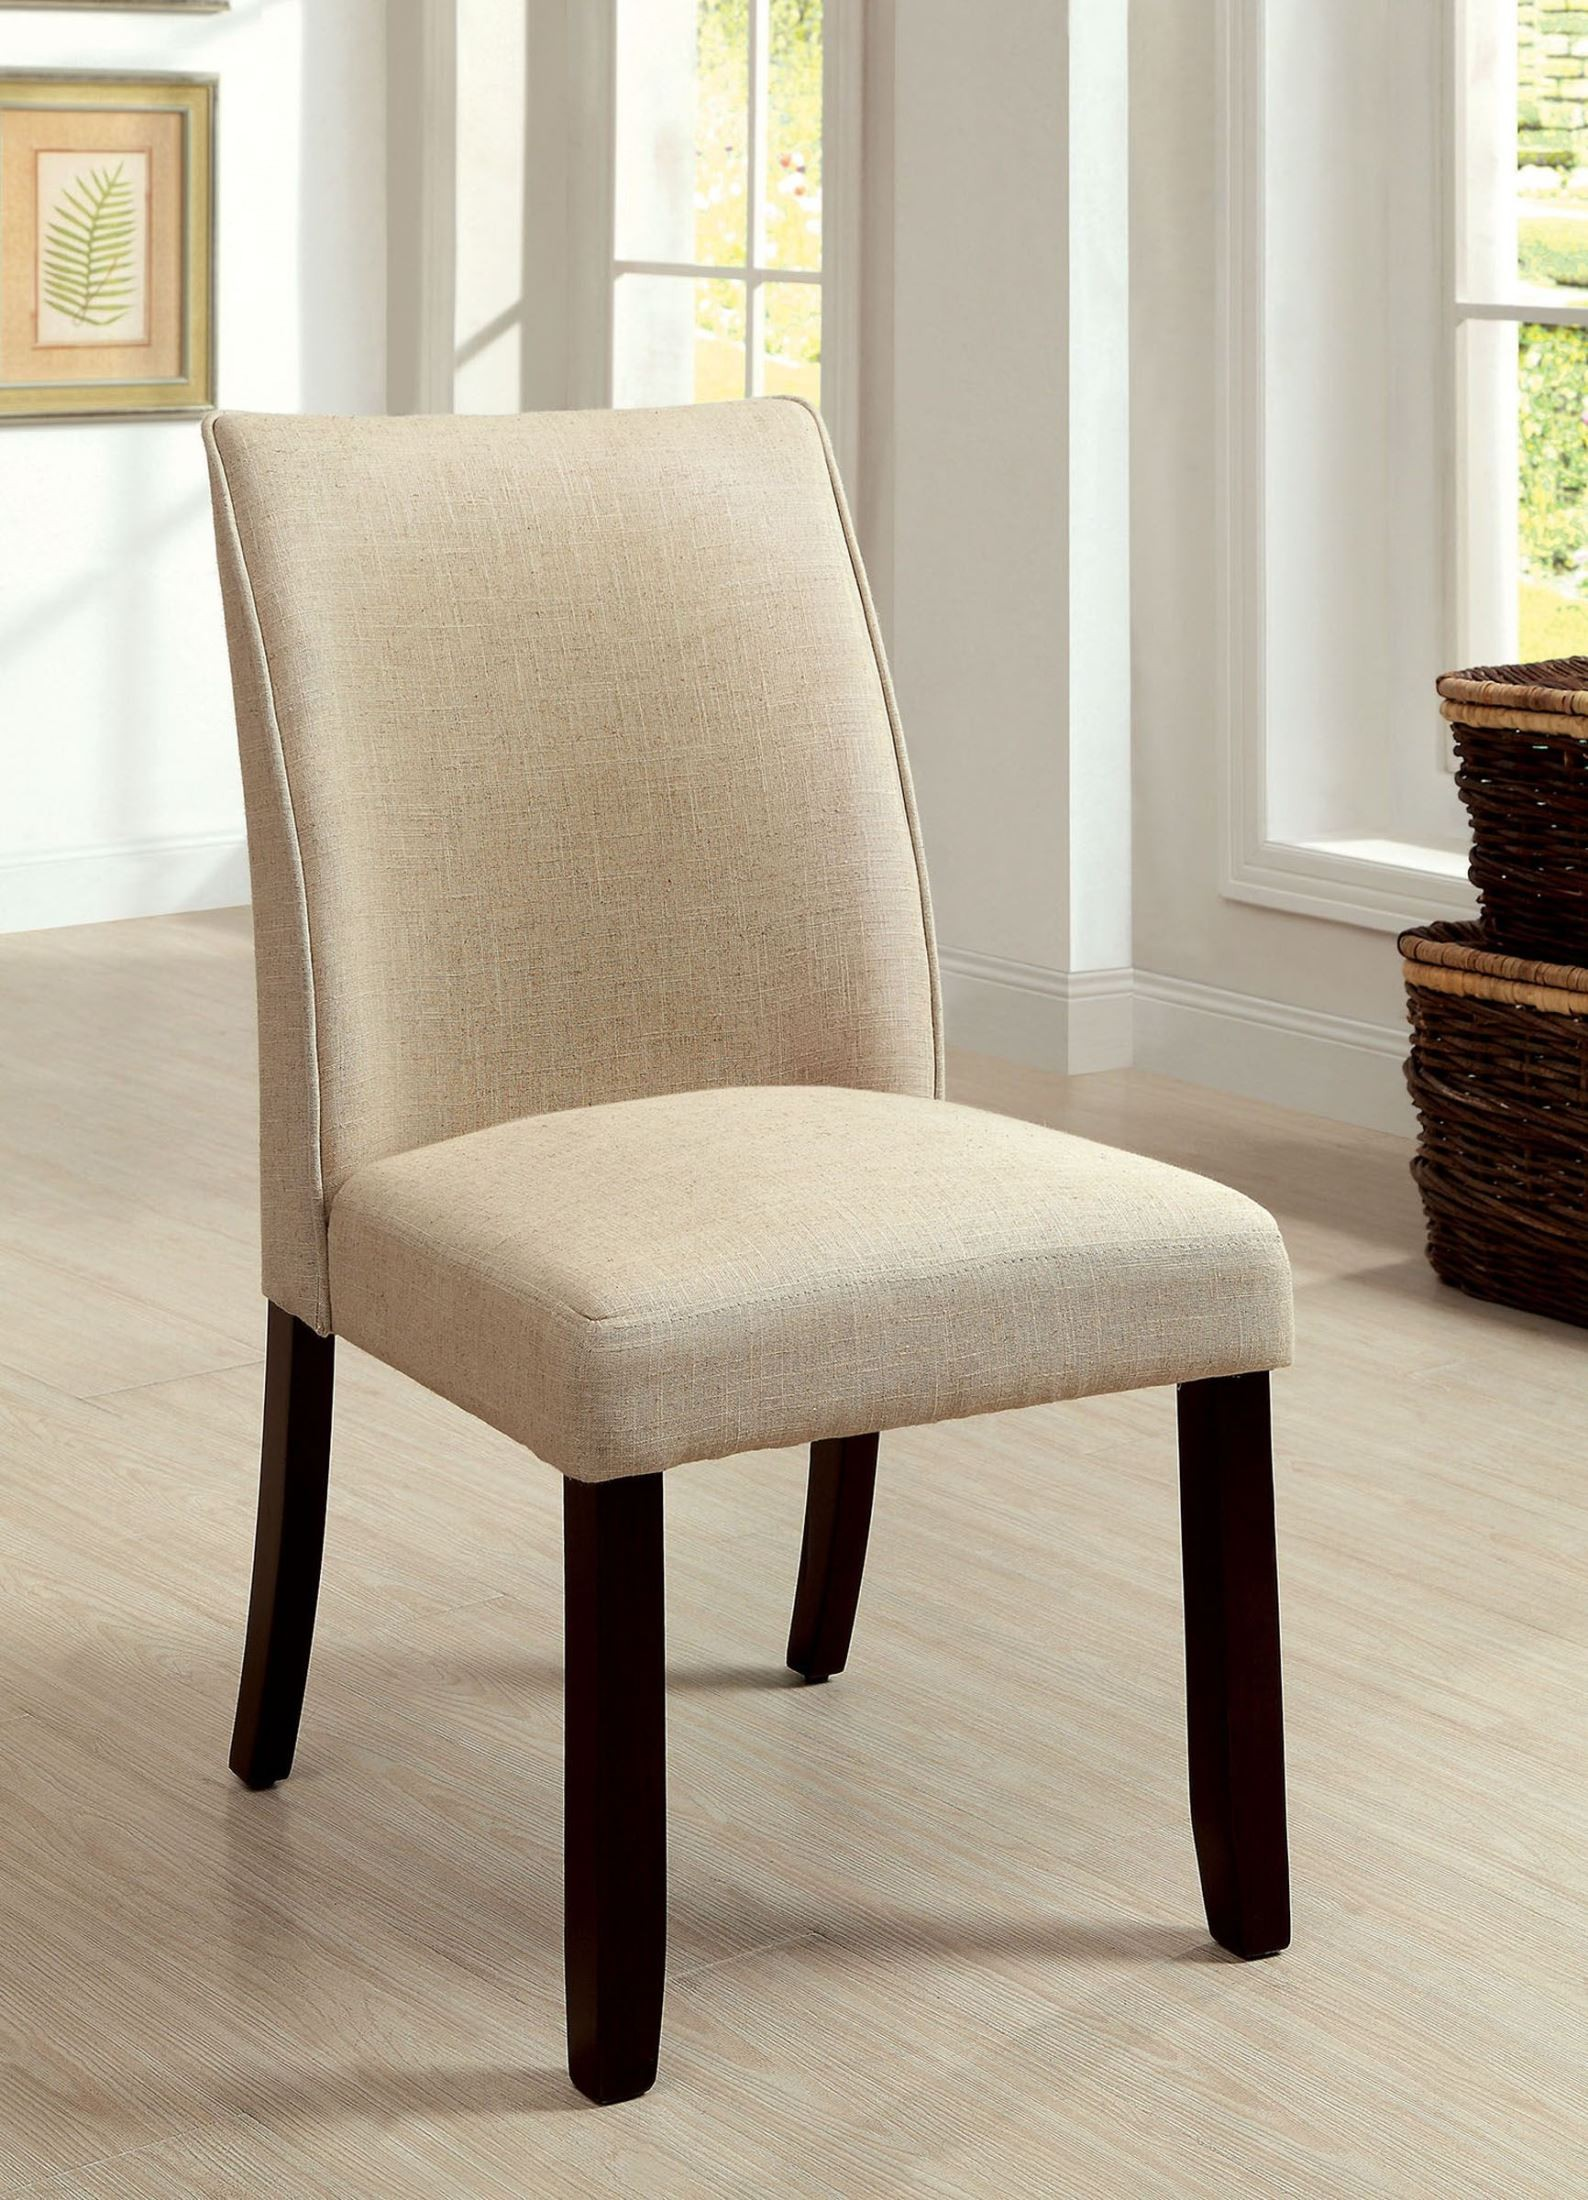 Upholstered Side Chairs Cimma Upholstered Side Chair Set Of 2 From Furniture Of